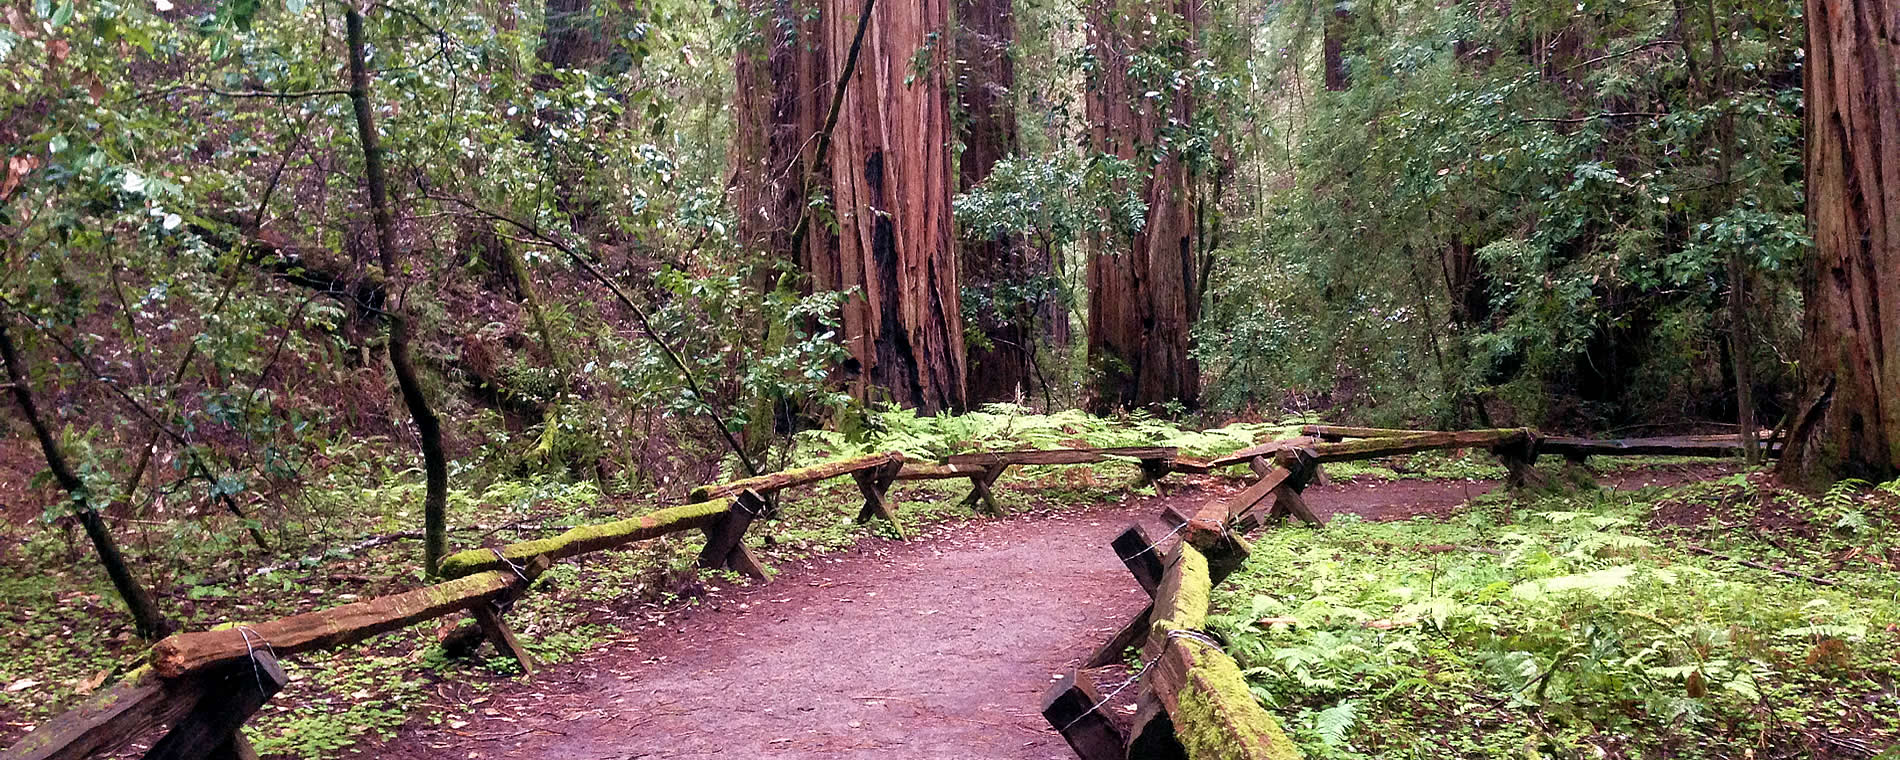 armstrong wood guerneville at the russian river